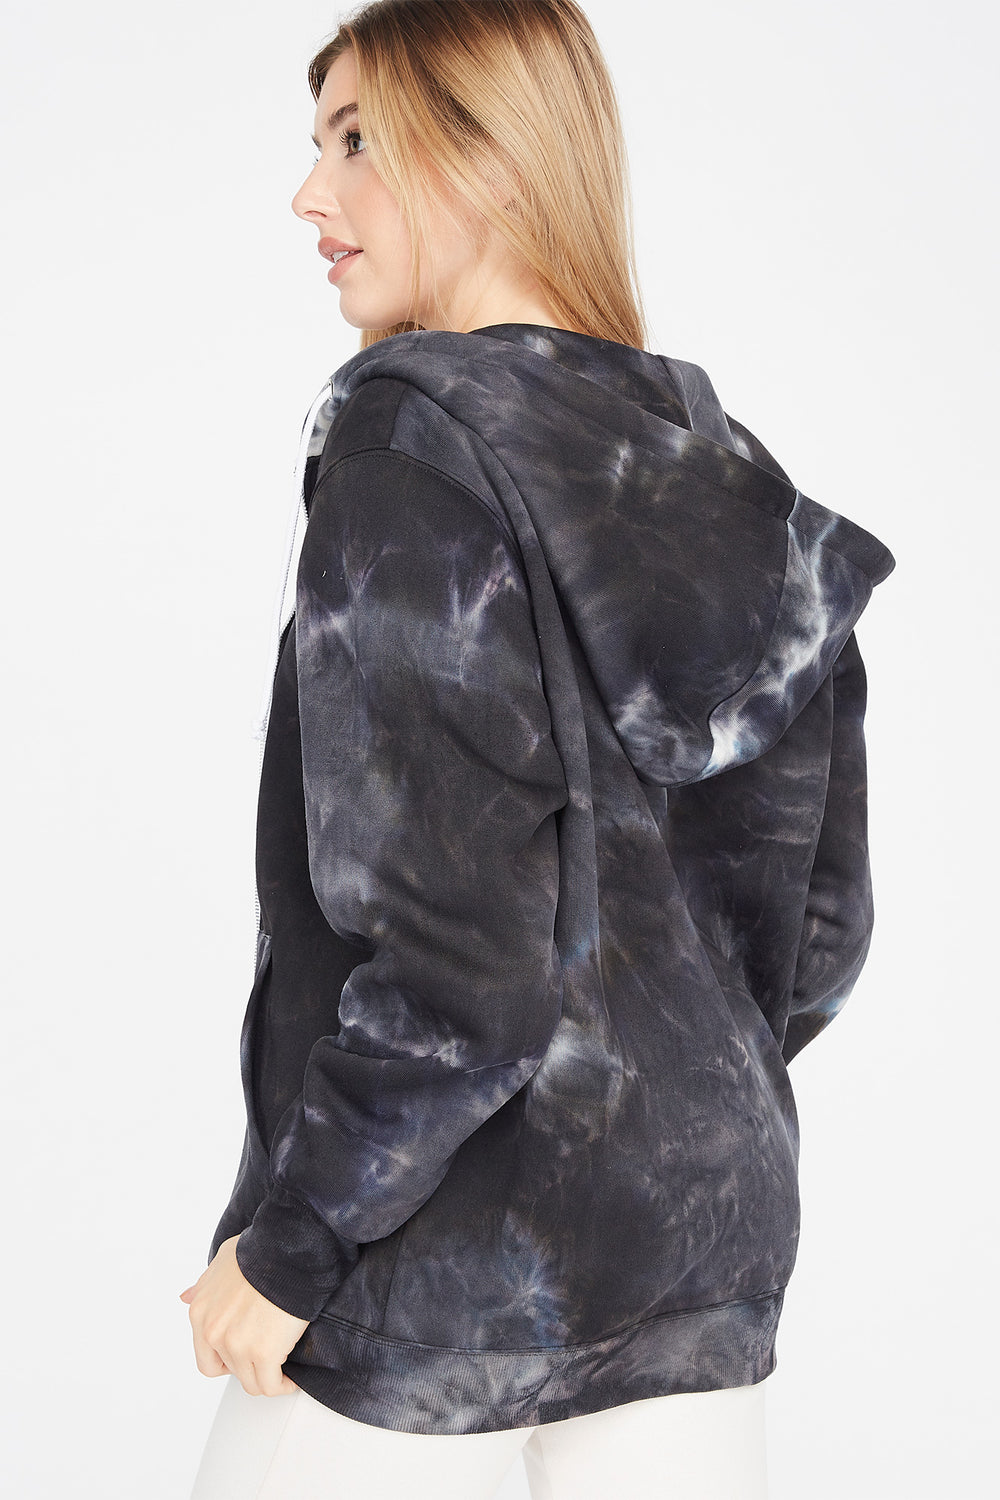 Fleece Black and White Tie Dye Oversized Zip-Up Hoodie Black with White